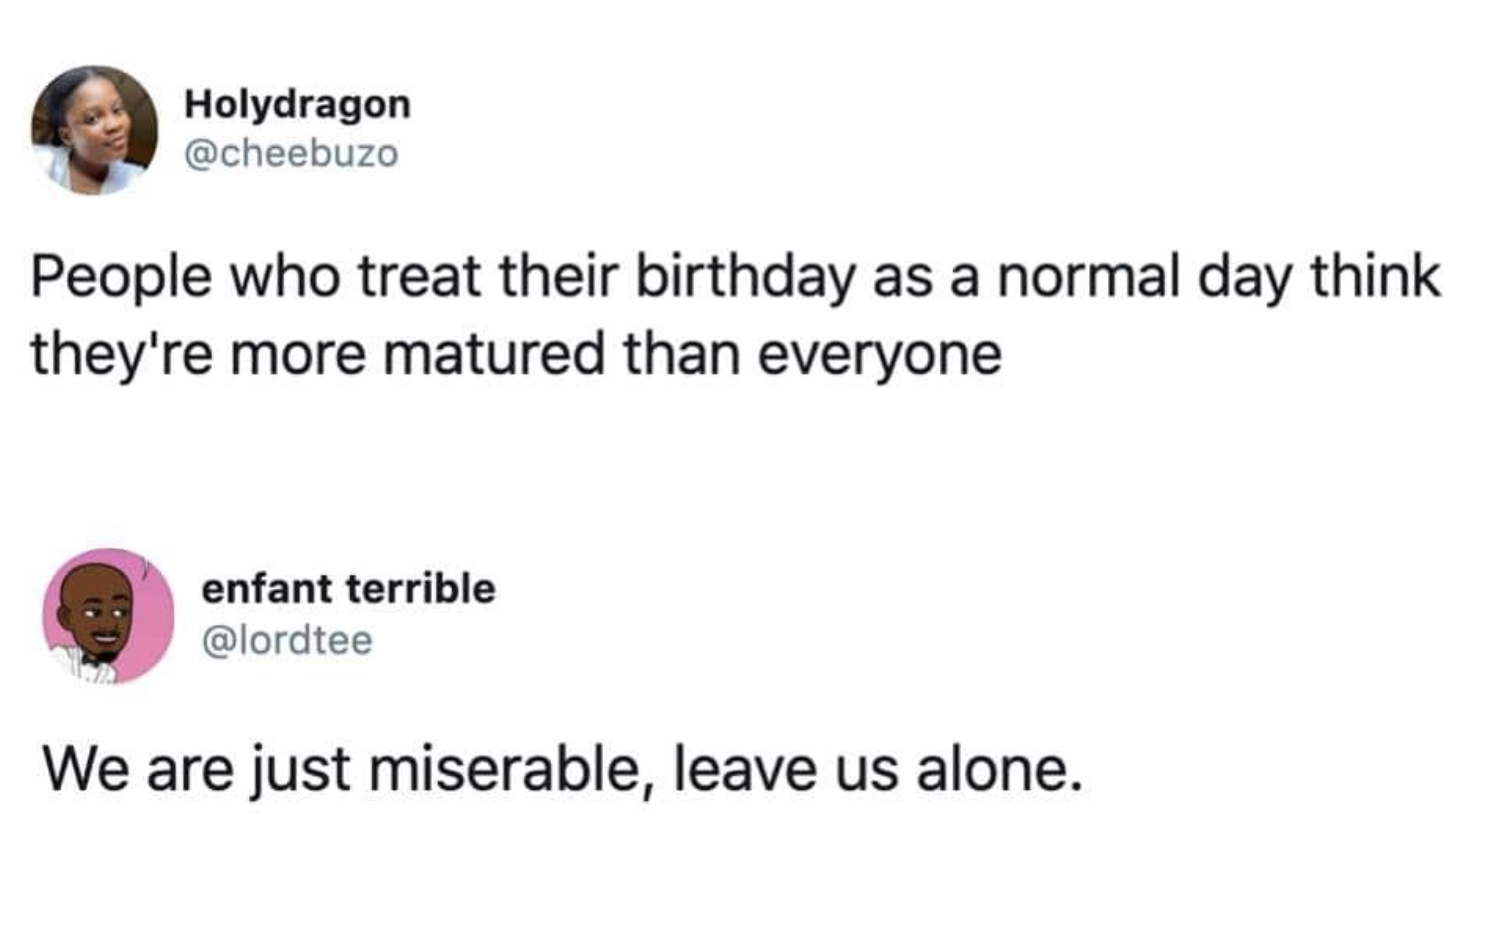 Two tweets one reads people who treat their birthday as a normal day think they're more mature than everyone and the next reads we are just miserable leave us alone